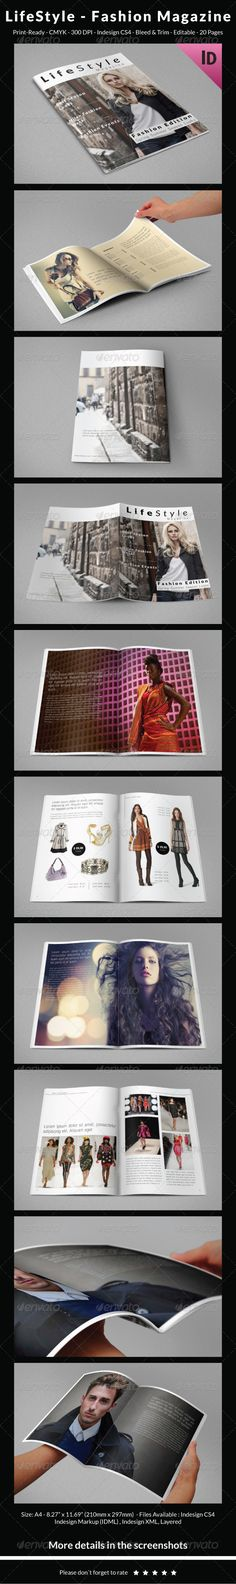 Indesign Catalog - Portfolio Brochure Template InDesign INDD ...